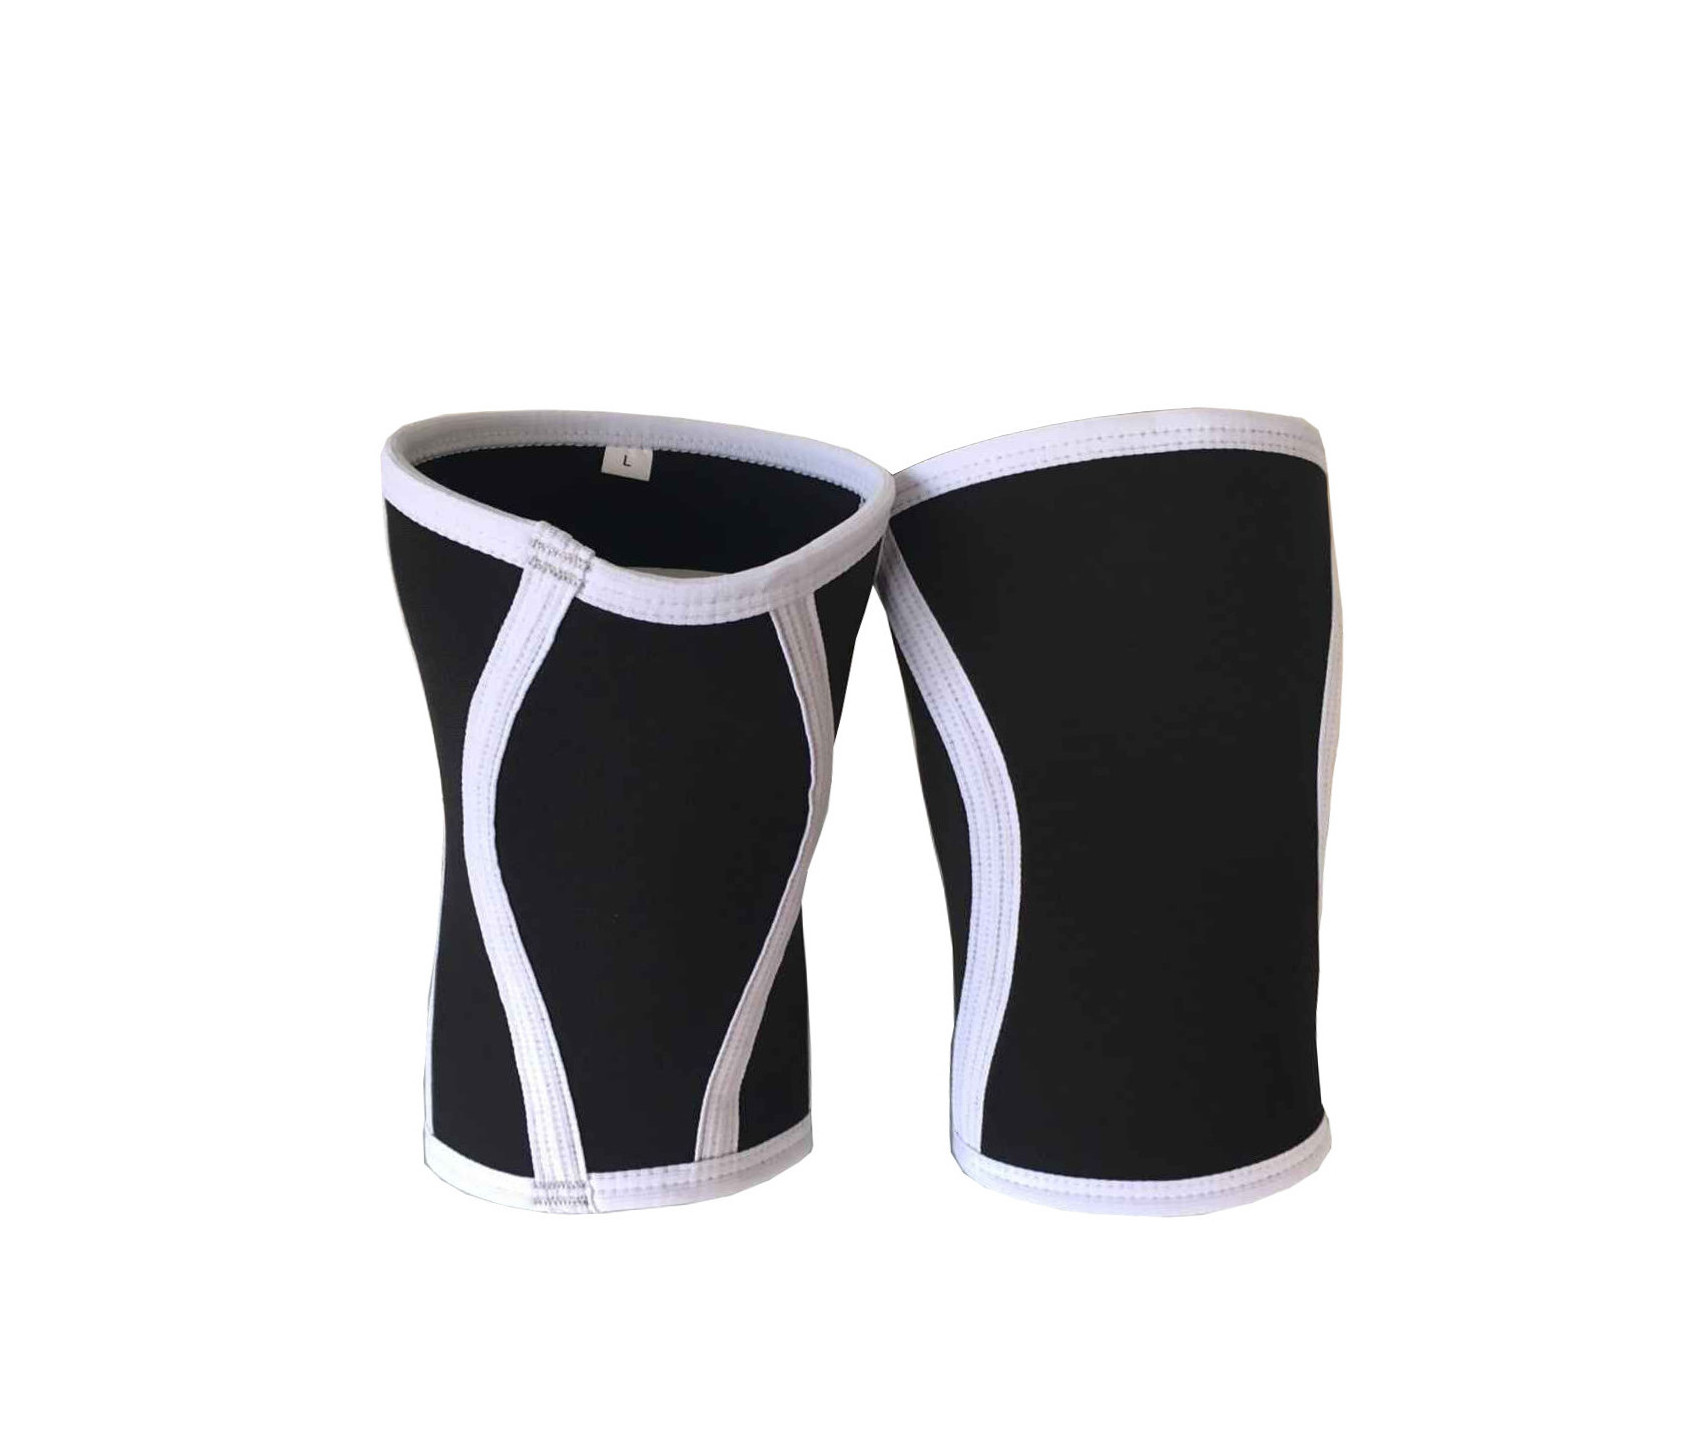 yawelift sleeves are great quality and a great price